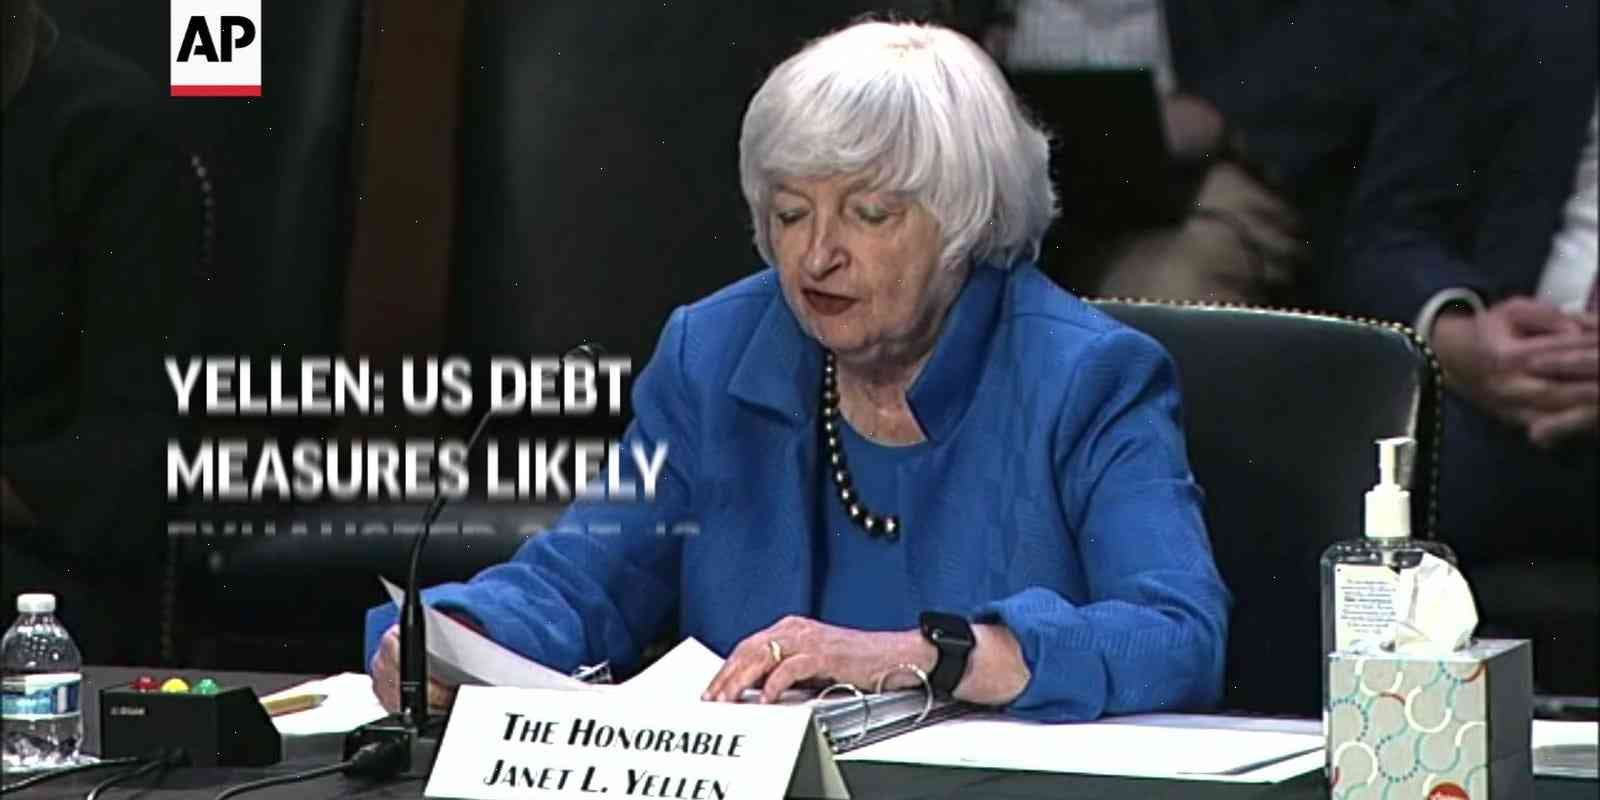 Yellen: US may have to borrow more to balance debt